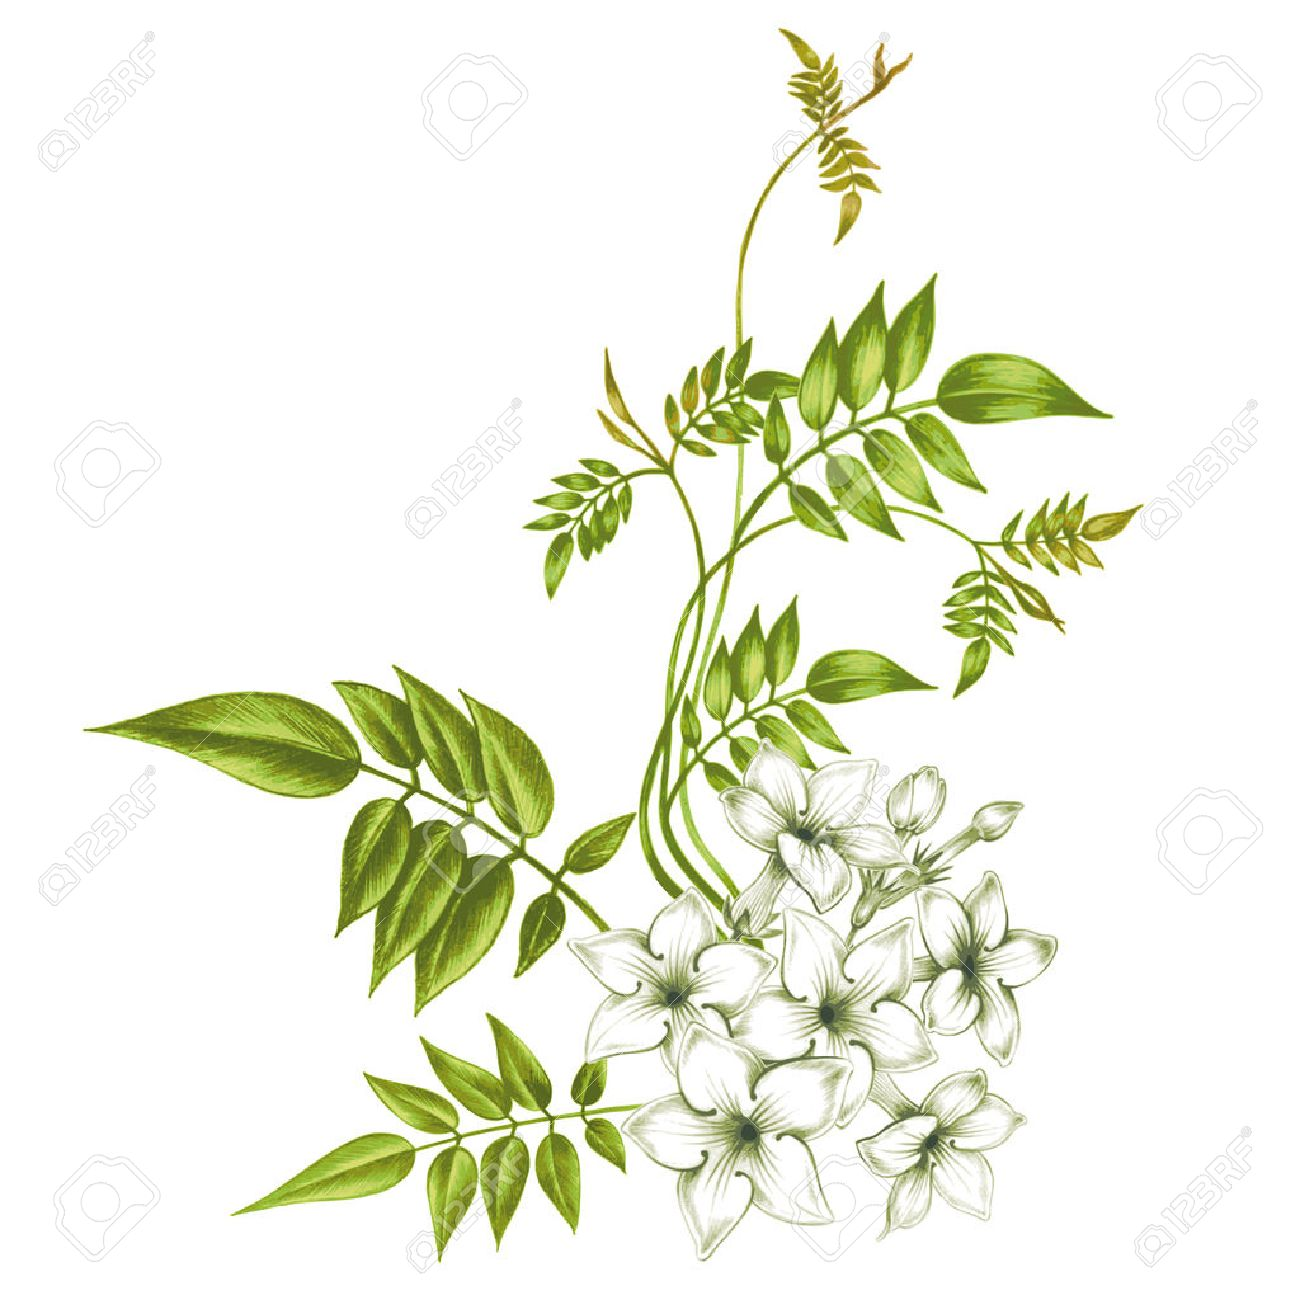 Jasmine flowers isolated on white background. Design for fabrics, textiles, paper, wallpaper, web. Vintage. - 55307055